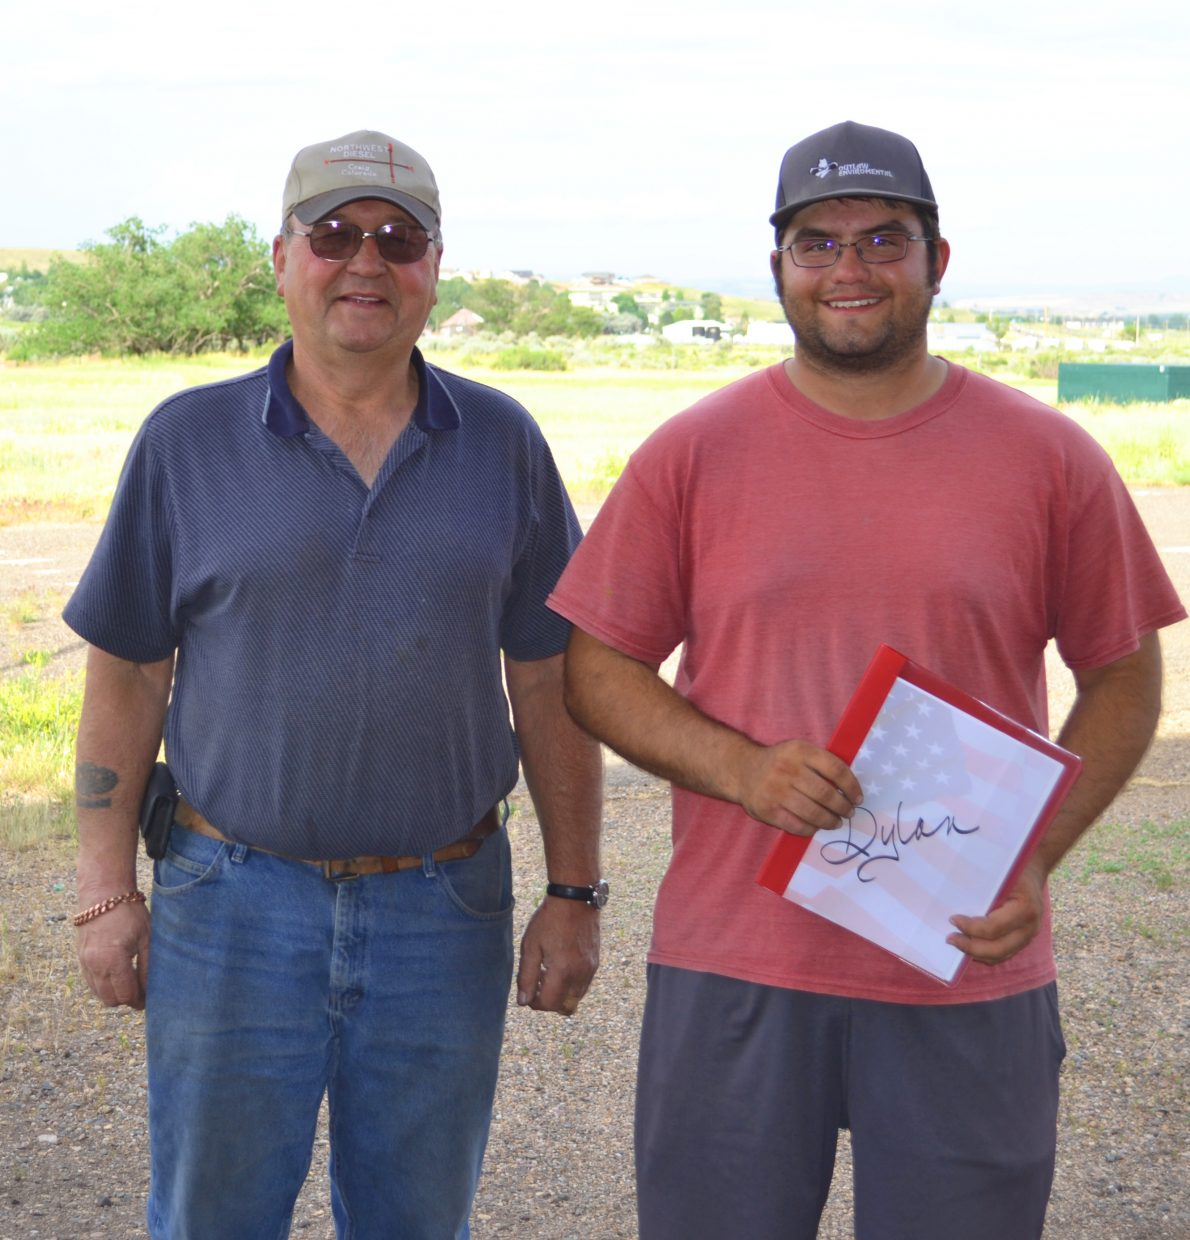 Bears Ears Sportsman Club and the Craig Trap Club recently awarded scholarships to the following individuals: Miranda Blomquist, .22 rifle and air pistol; Tyler Gerber, shotgun; Dylan Villa, .22 rifle and air pistol; and Travis Walsh, archery. Craig Trap Club President Larry Neu presented the awards to Blomquist, Gerber and Villa. Walsh was unable to accept his award in person. Each was awarded a $750 scholarship, and Bears Ears Sportsman Club and the Craig Trap Club both wish the best of luck to them in their pursuit of a higher education.